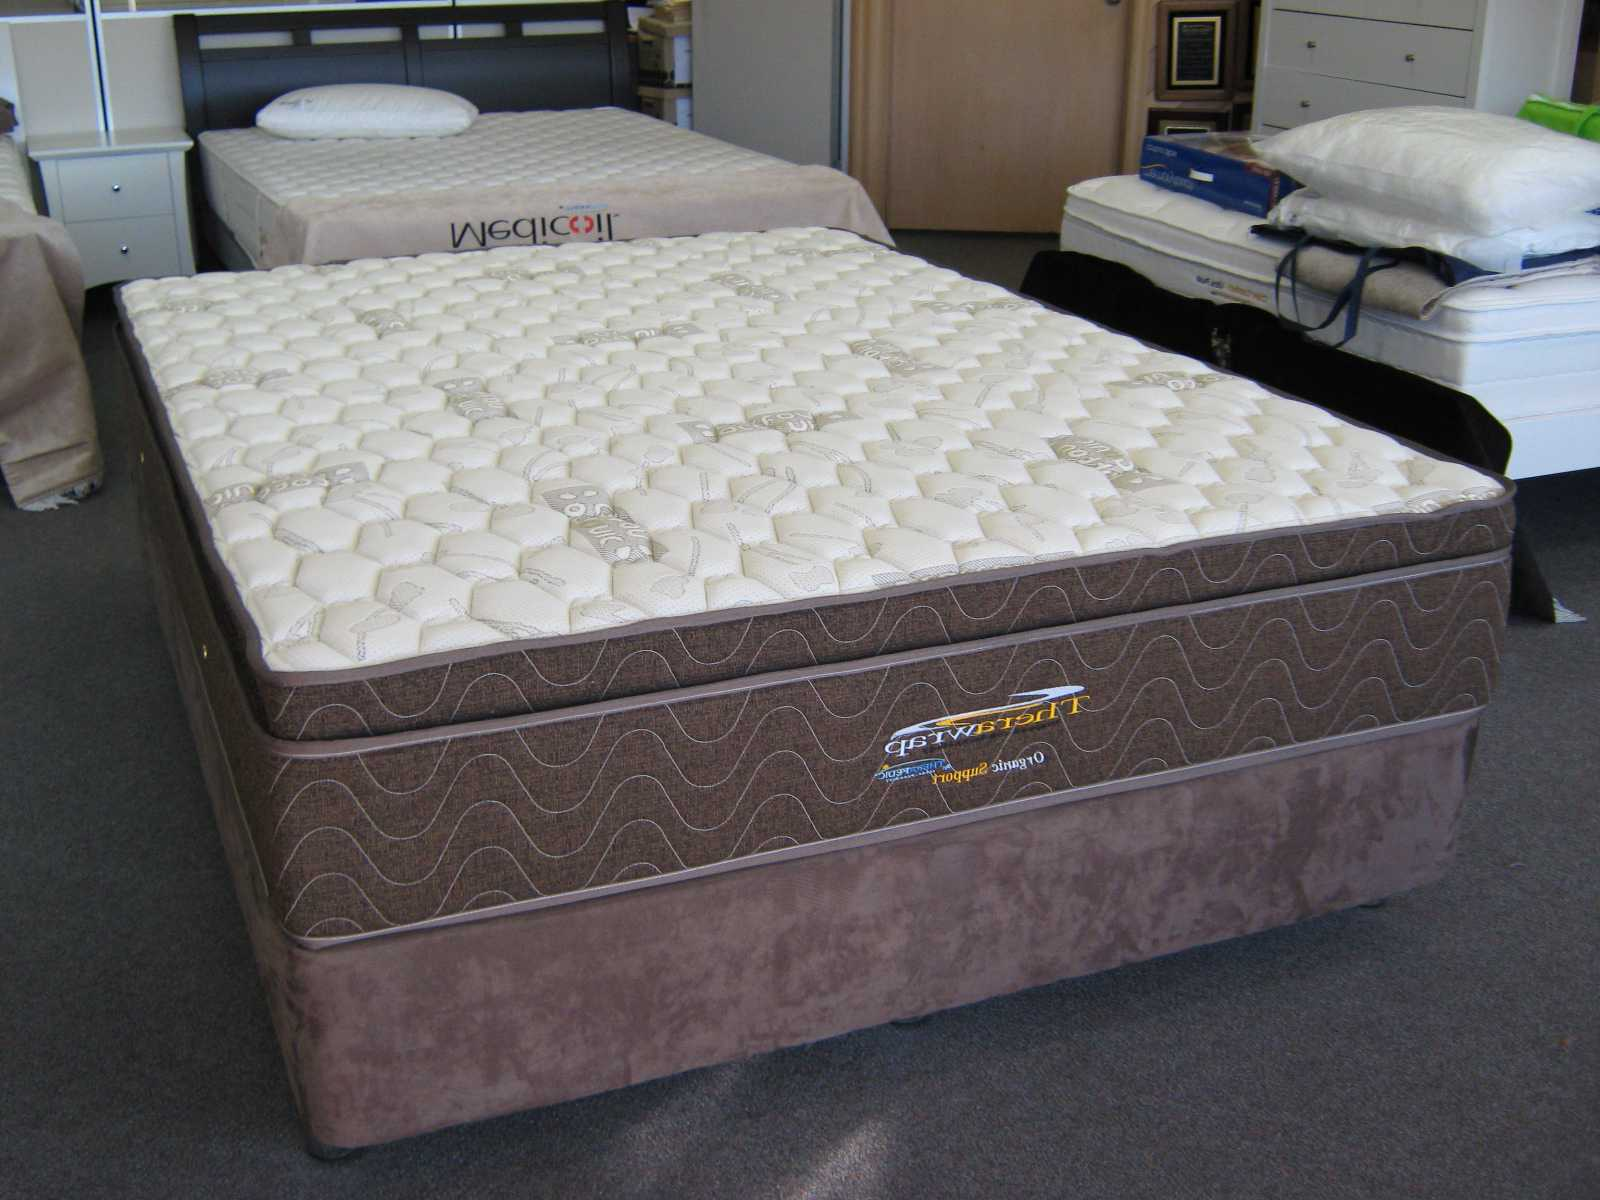 kingkoil ext mattresses beds king koil pioneers products winks chiropractor forty recommended science brands sleep mattress